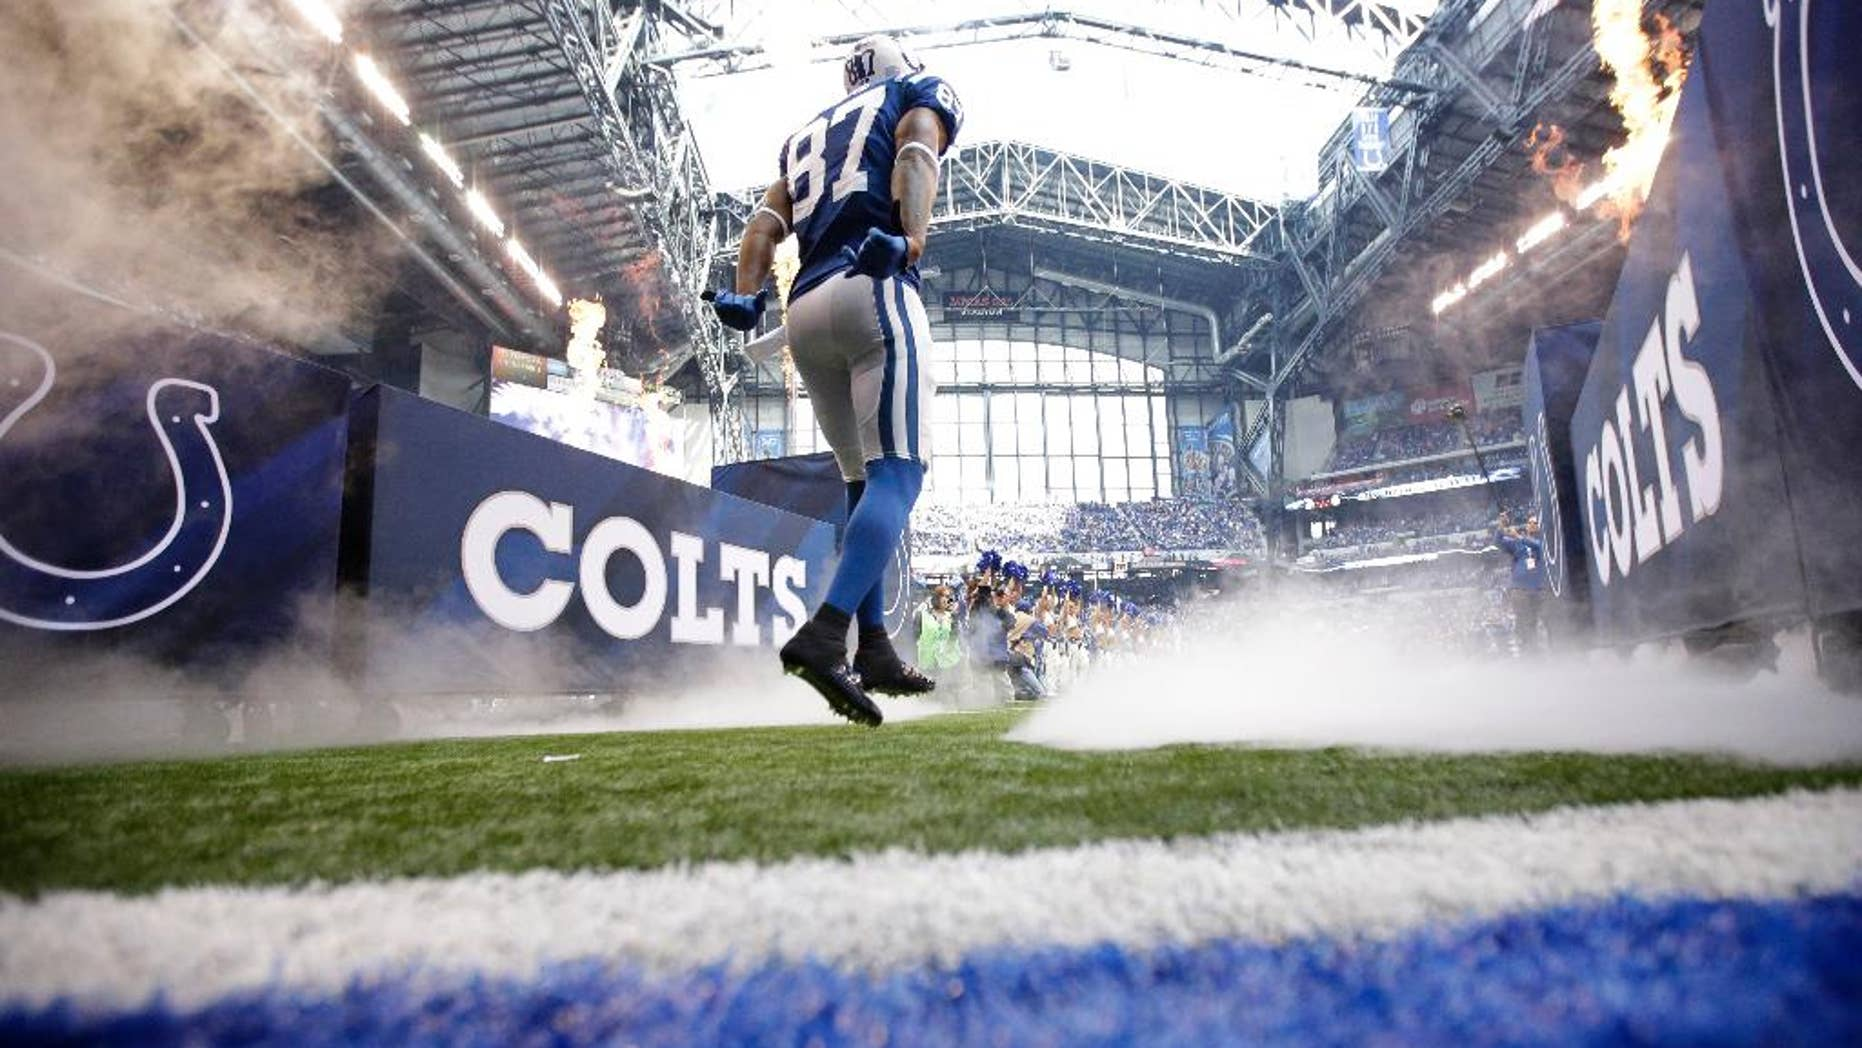 Indianapolis Colts wide receiver Reggie Wayne runs onto the field after being introduced before an NFL football game against the Cincinnati Bengals, Sunday, Oct. 19, 2014, in Indianapolis. (AP Photo/AJ Mast)